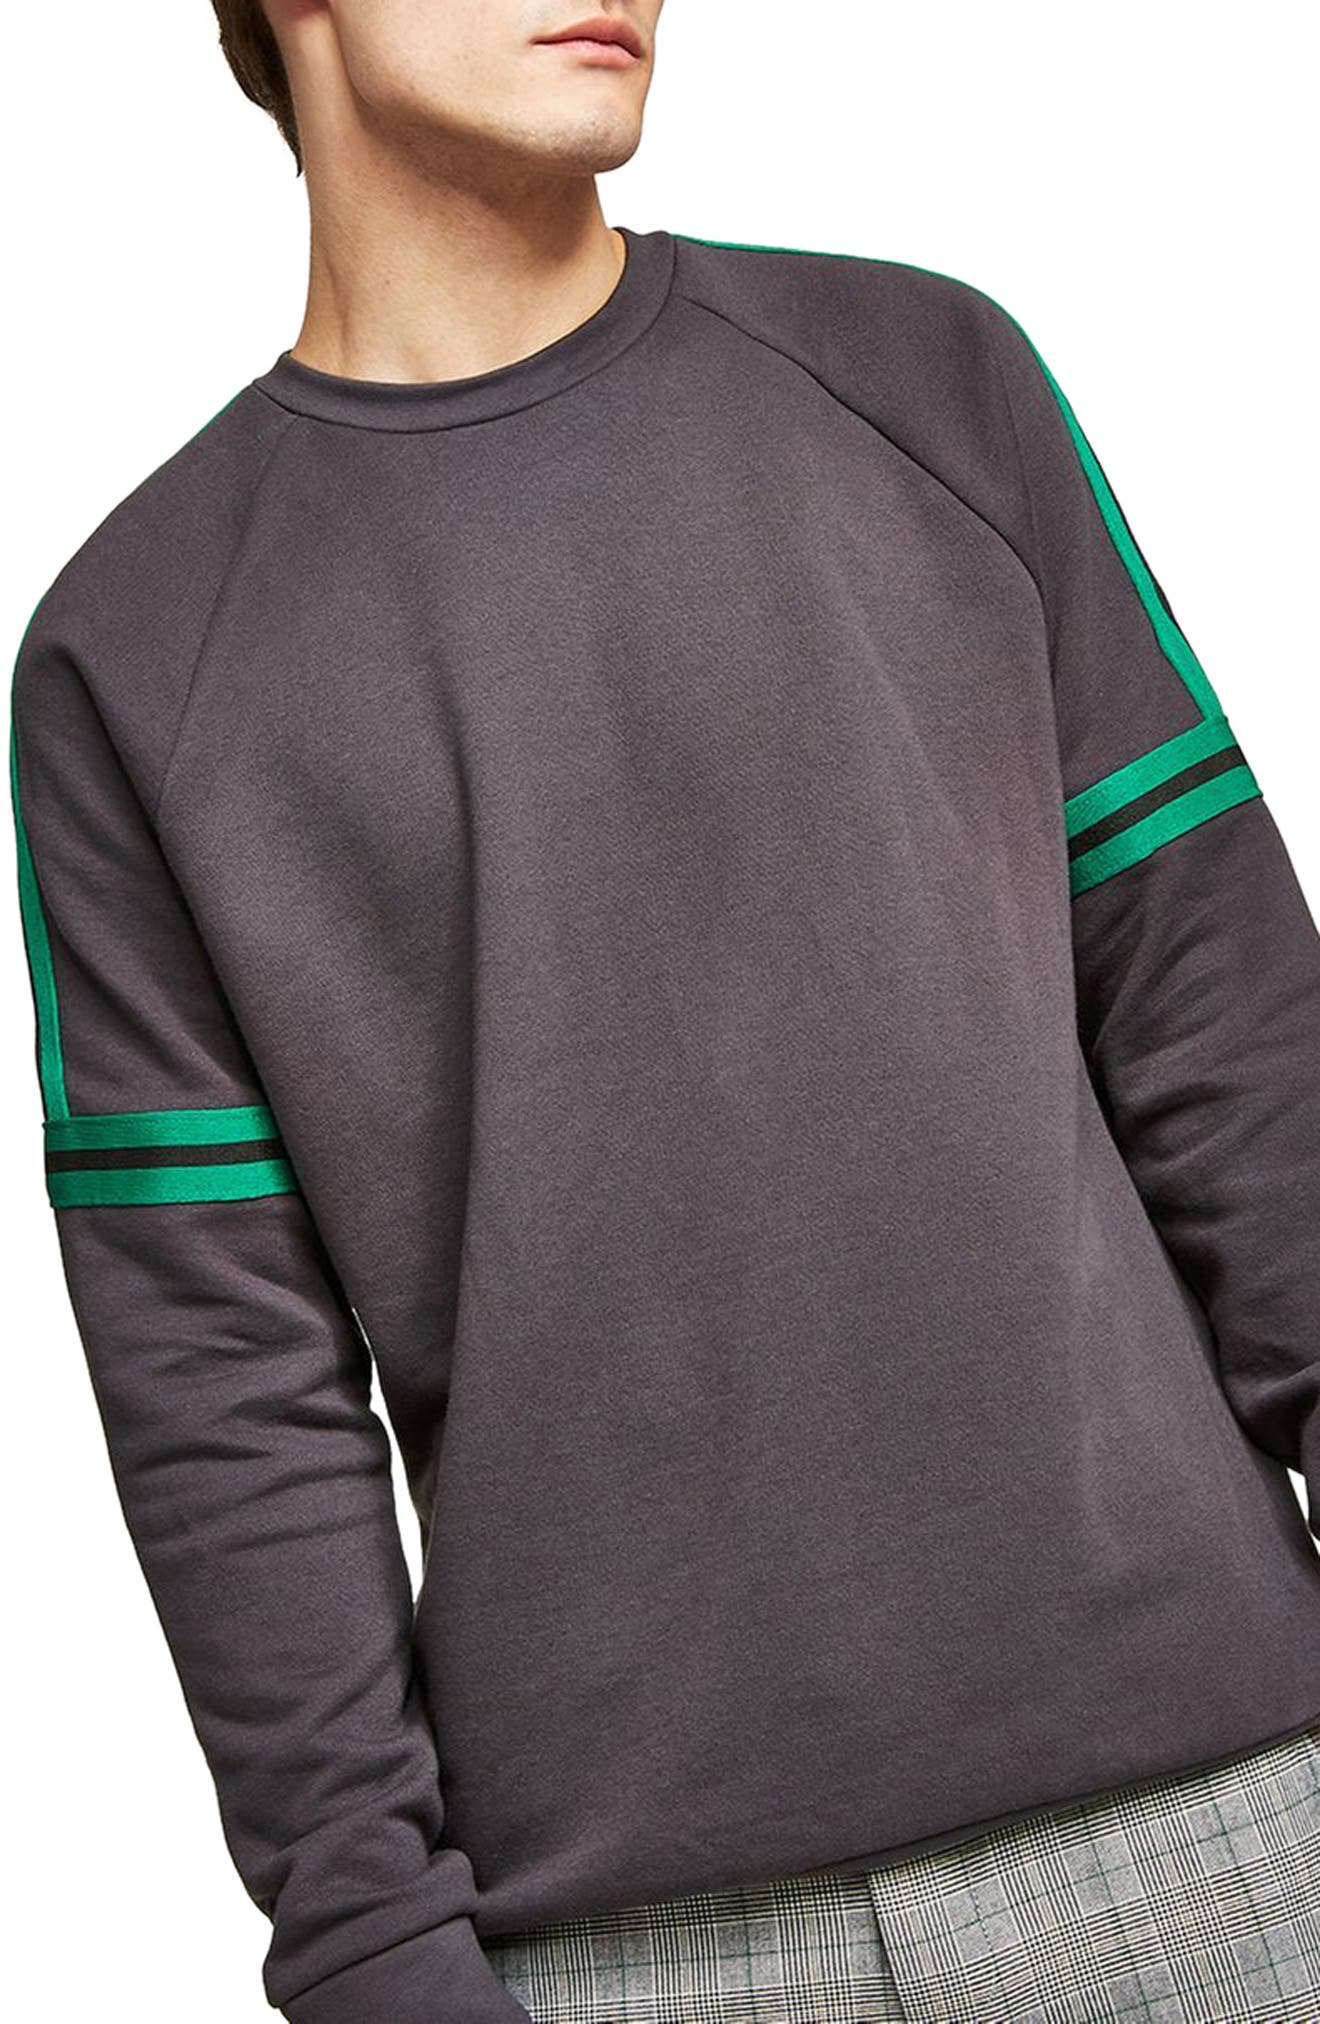 Tape Crewneck Sweatshirt,                         Main,                         color,